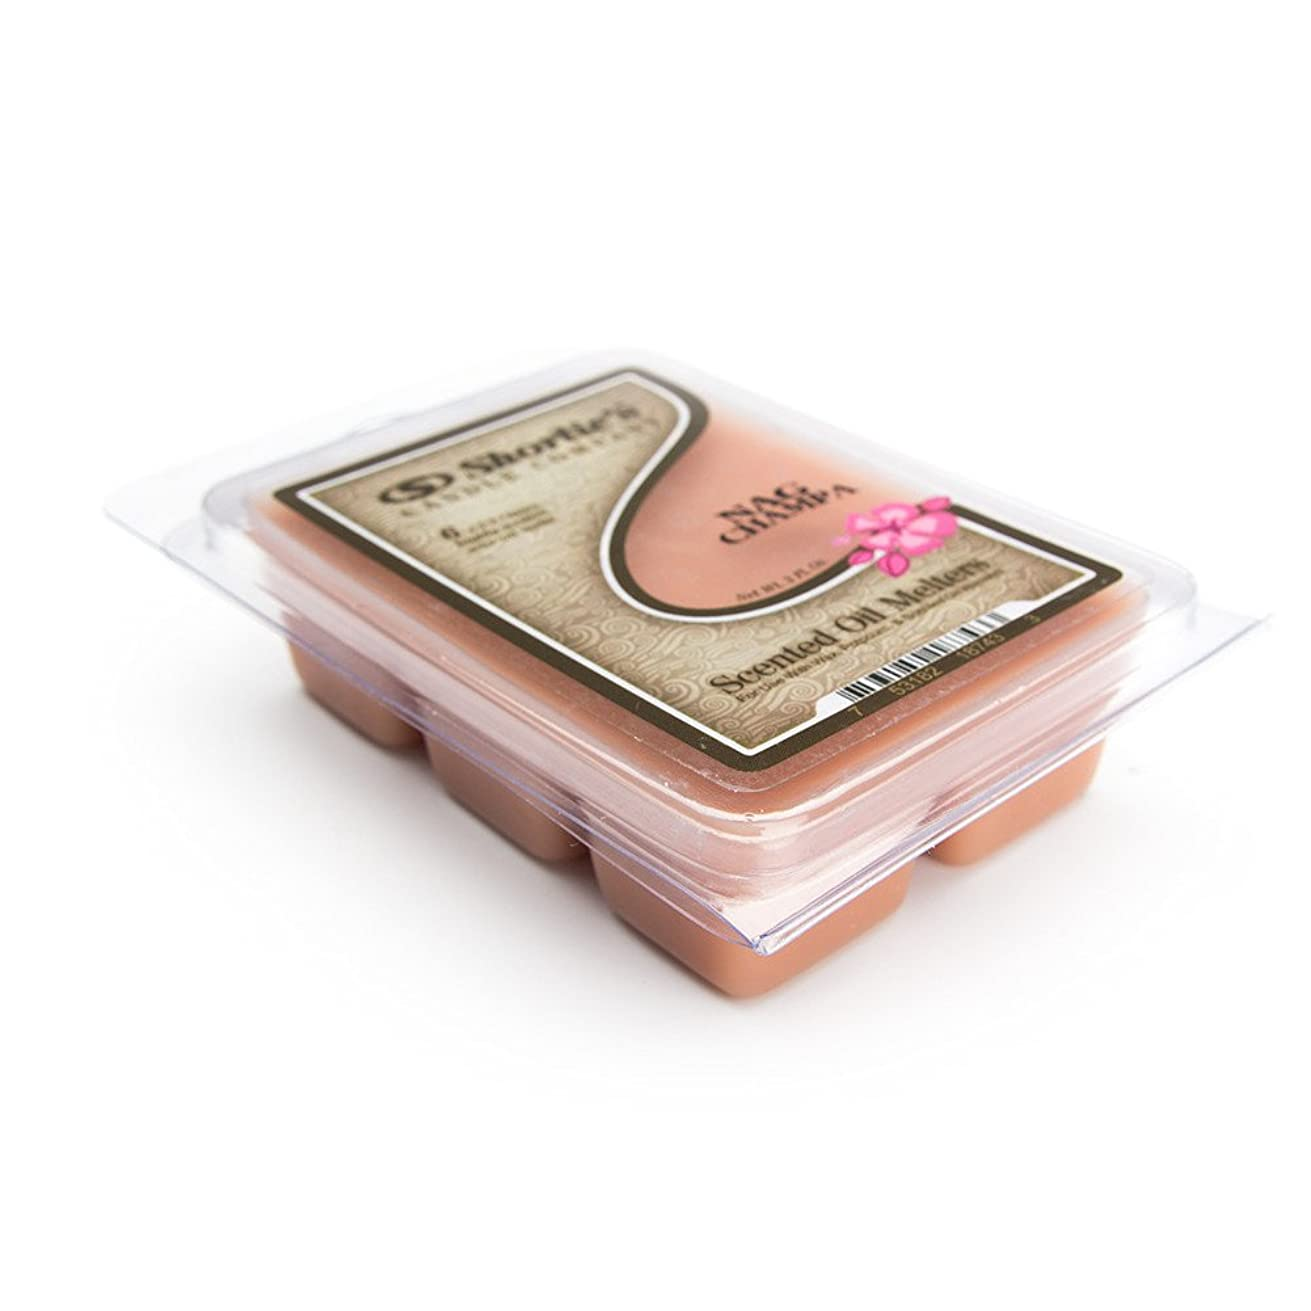 Shortie's Candle Company Nag Champa Wax Melts - 1 Highly Scented 3 Oz. Bar - Made with Natural Oils - Incense & Earth Air Freshener Cubes Collection